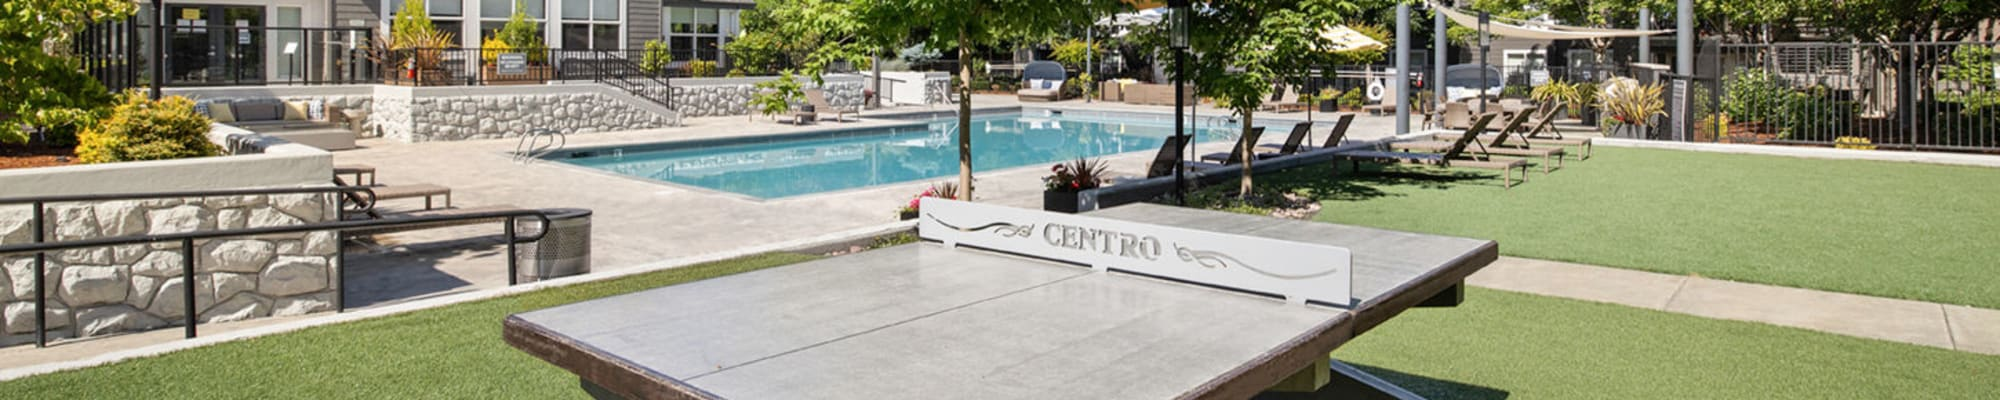 Login for users of our website at Centro Apartment Homes in Hillsboro, Oregon